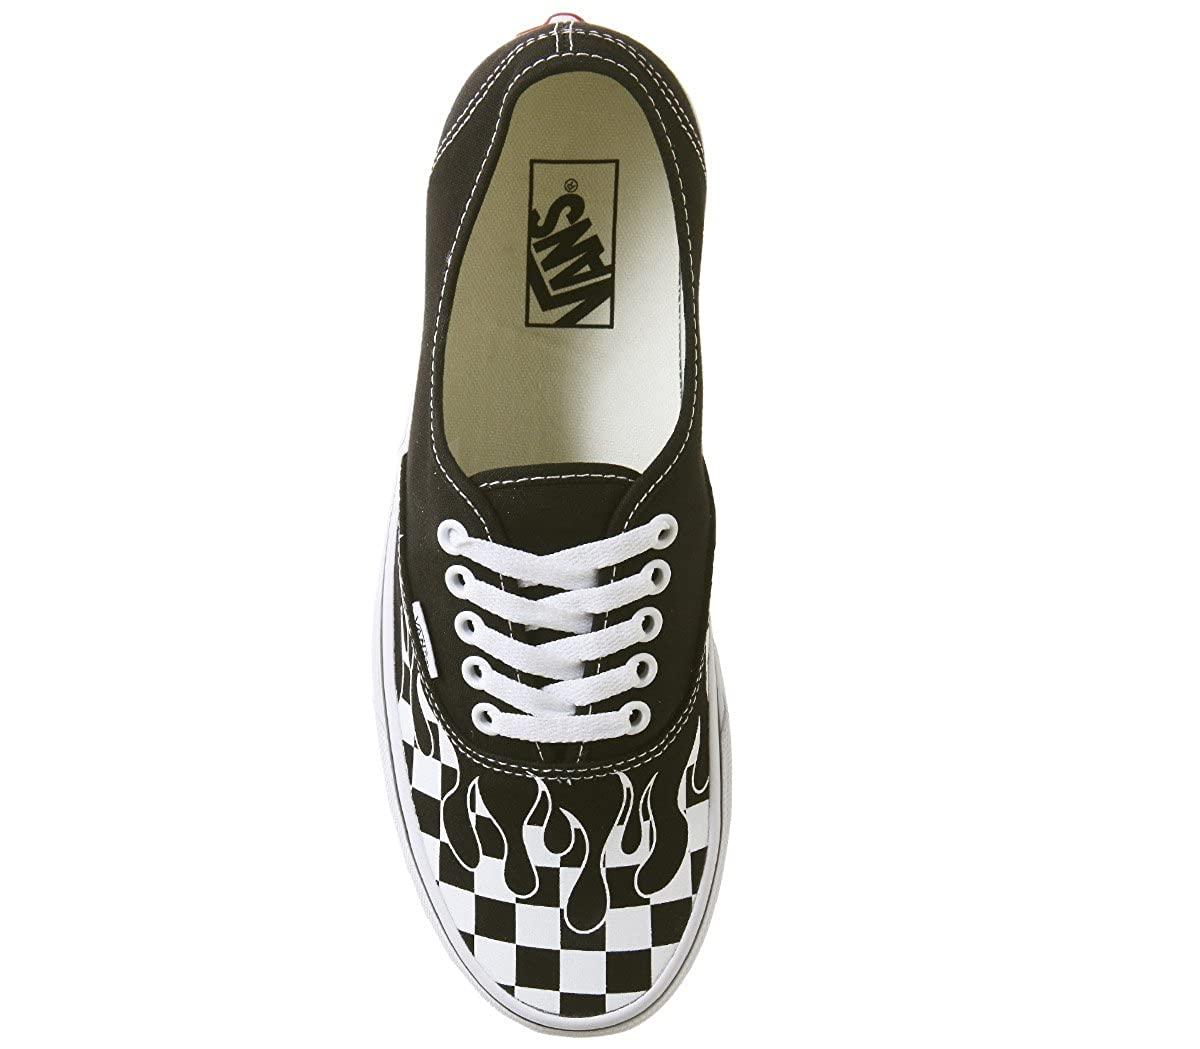 Vans Checker AUTHENTIC, Unisex Erwachsene Sneakers Checker Vans Flame schwarz true Weiß 45071f